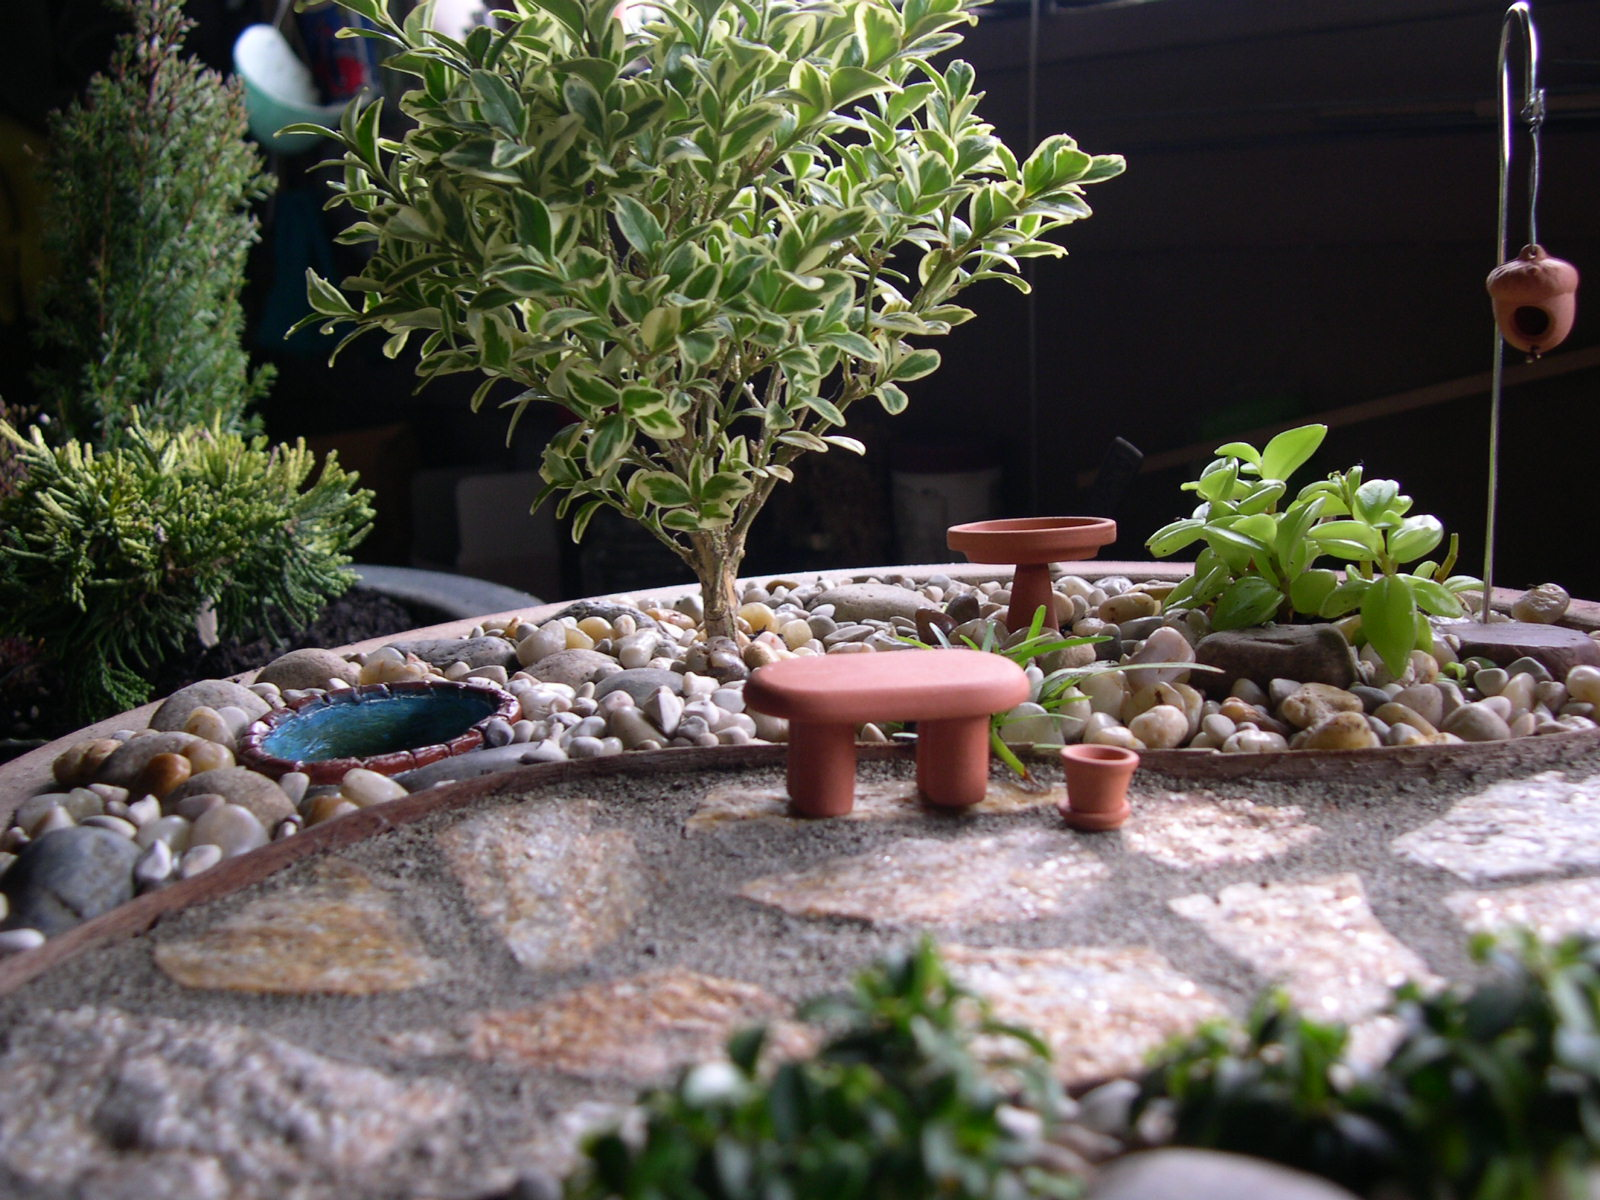 An indoor miniature garden that looks like the outdoors.